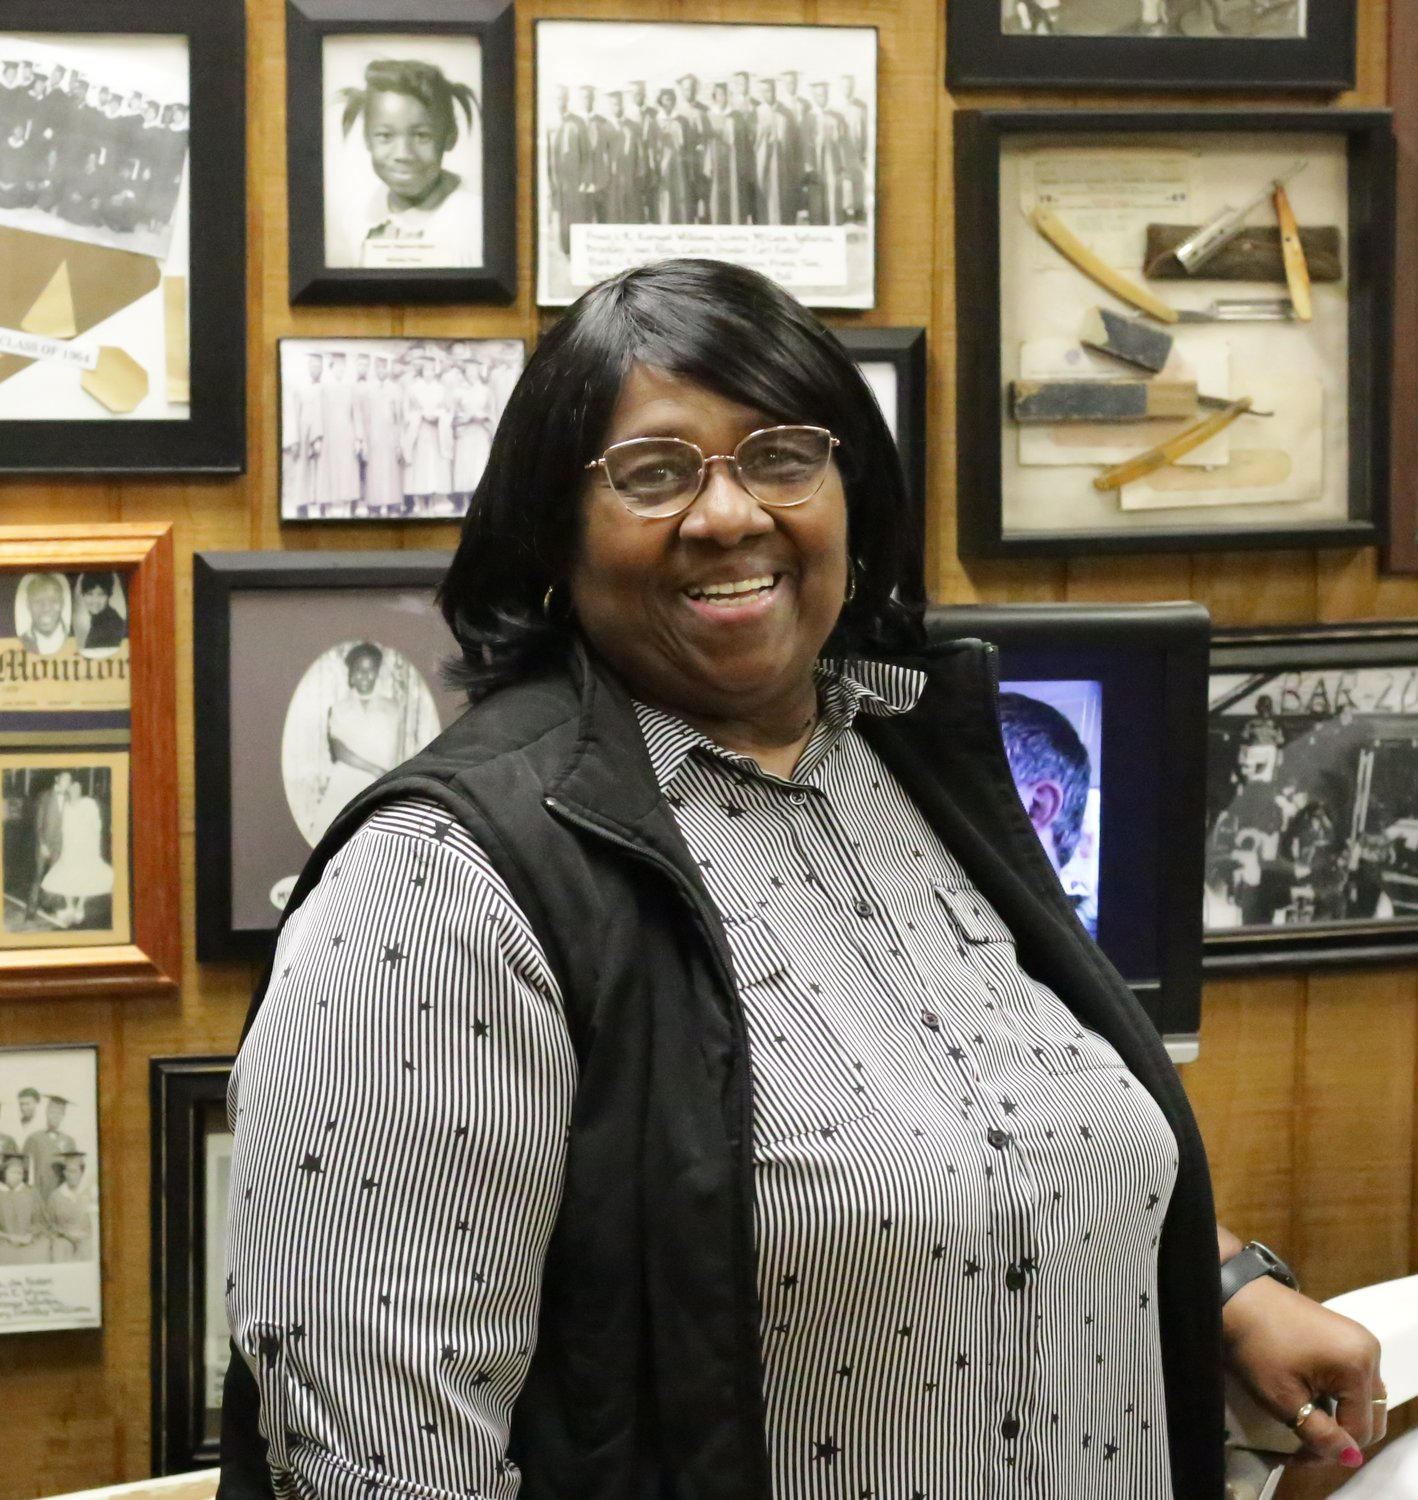 Black History Has Prominent Place In Mineola Historical Museum Wood County Monitor